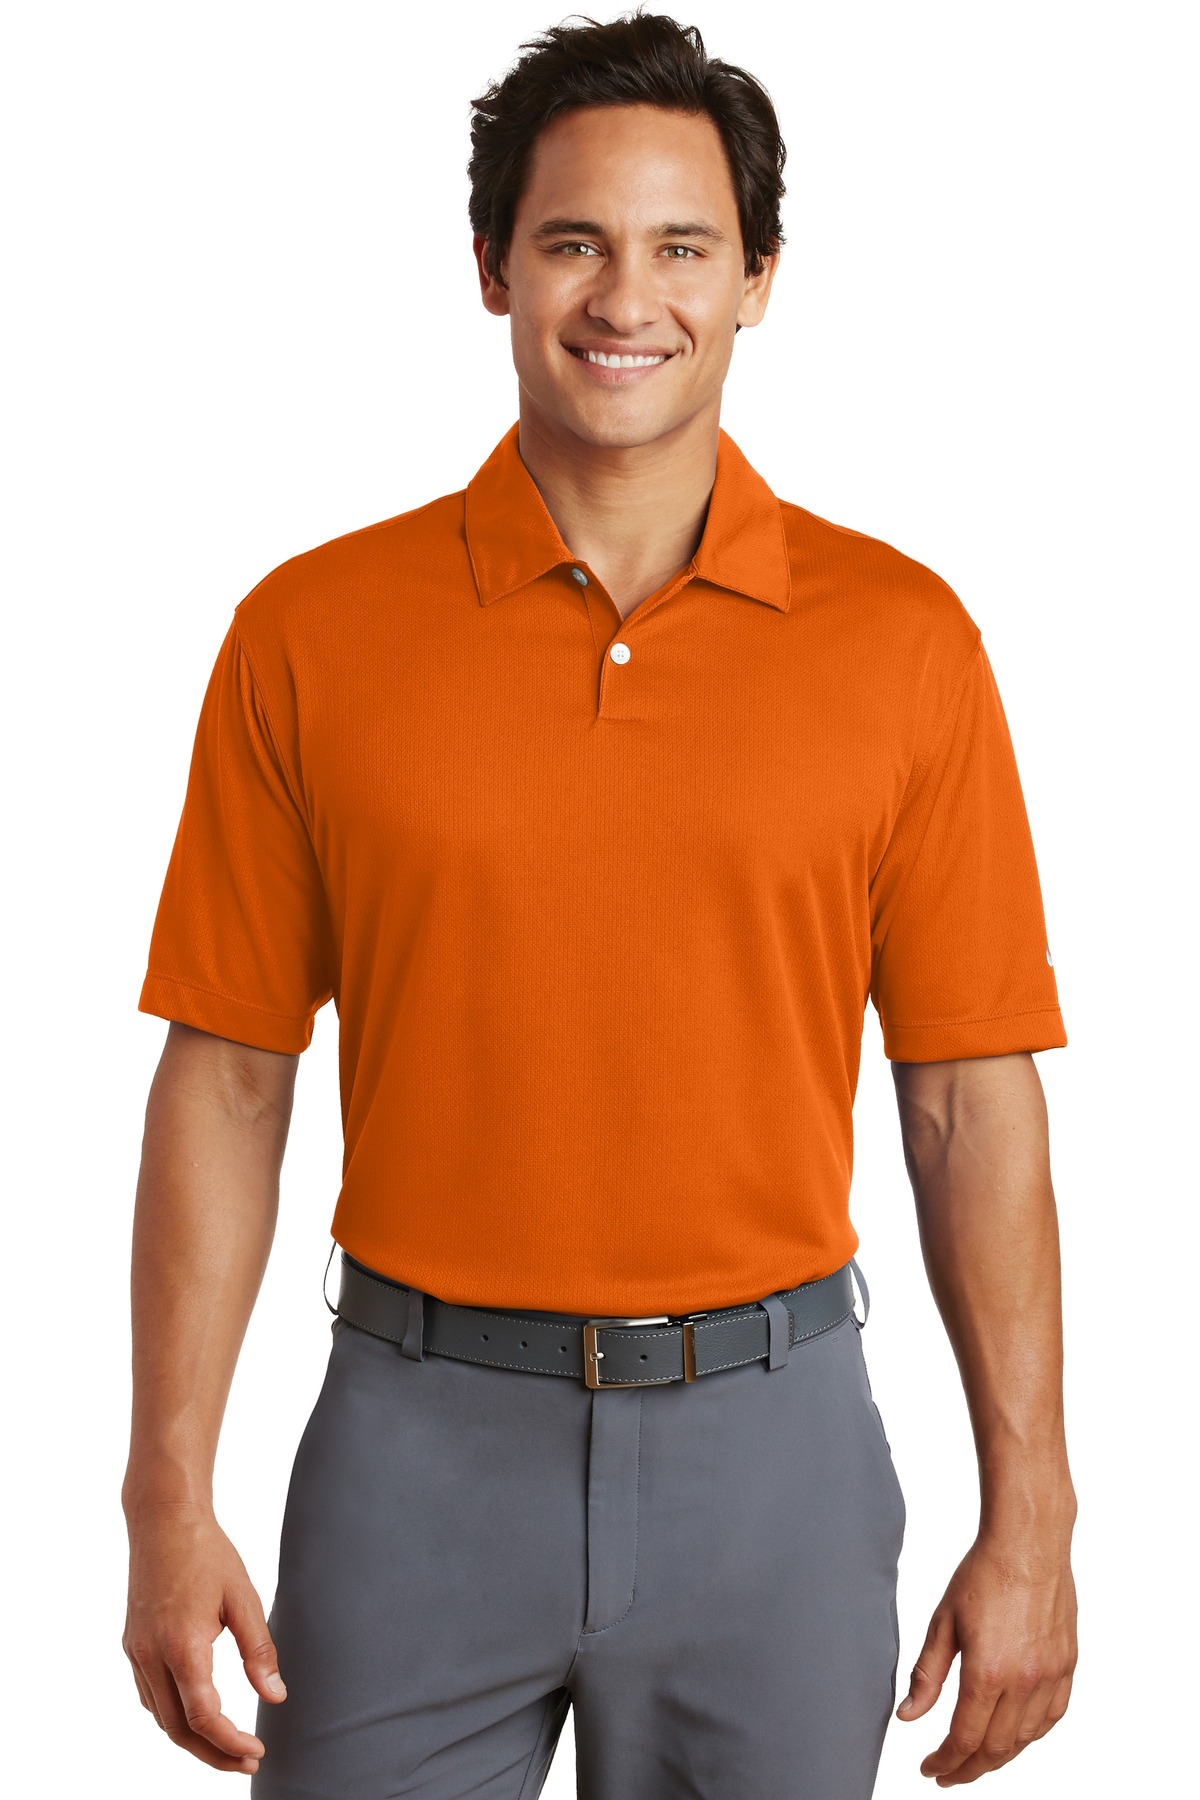 Nike Dri-FIT Pebble Texture Polo. 373749 - Orange